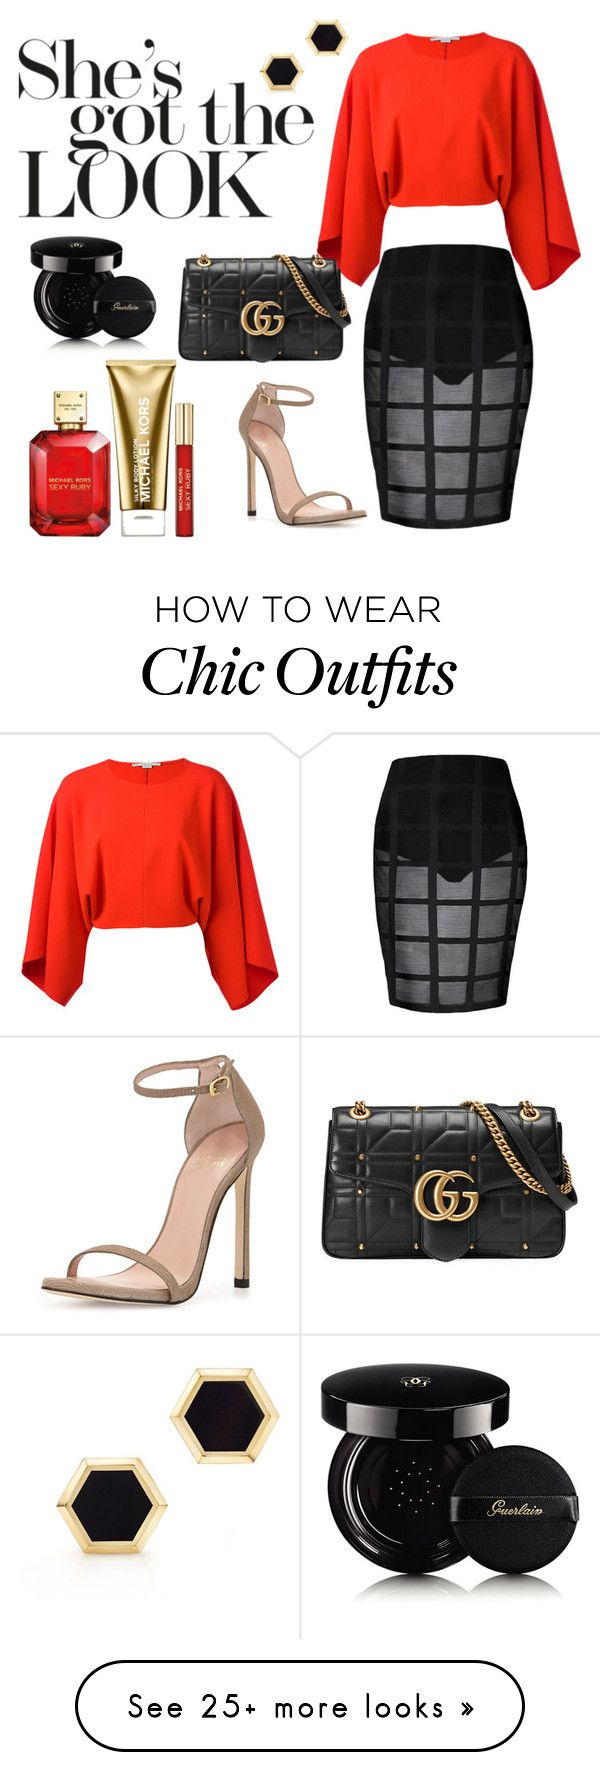 """""""Looking Good!"""" by annastyles101 on Polyvore featuring Stuart Weitzman, STELLA McCARTNEY, Mor, Birks, Michael Kors, Guerlain and Gucci"""